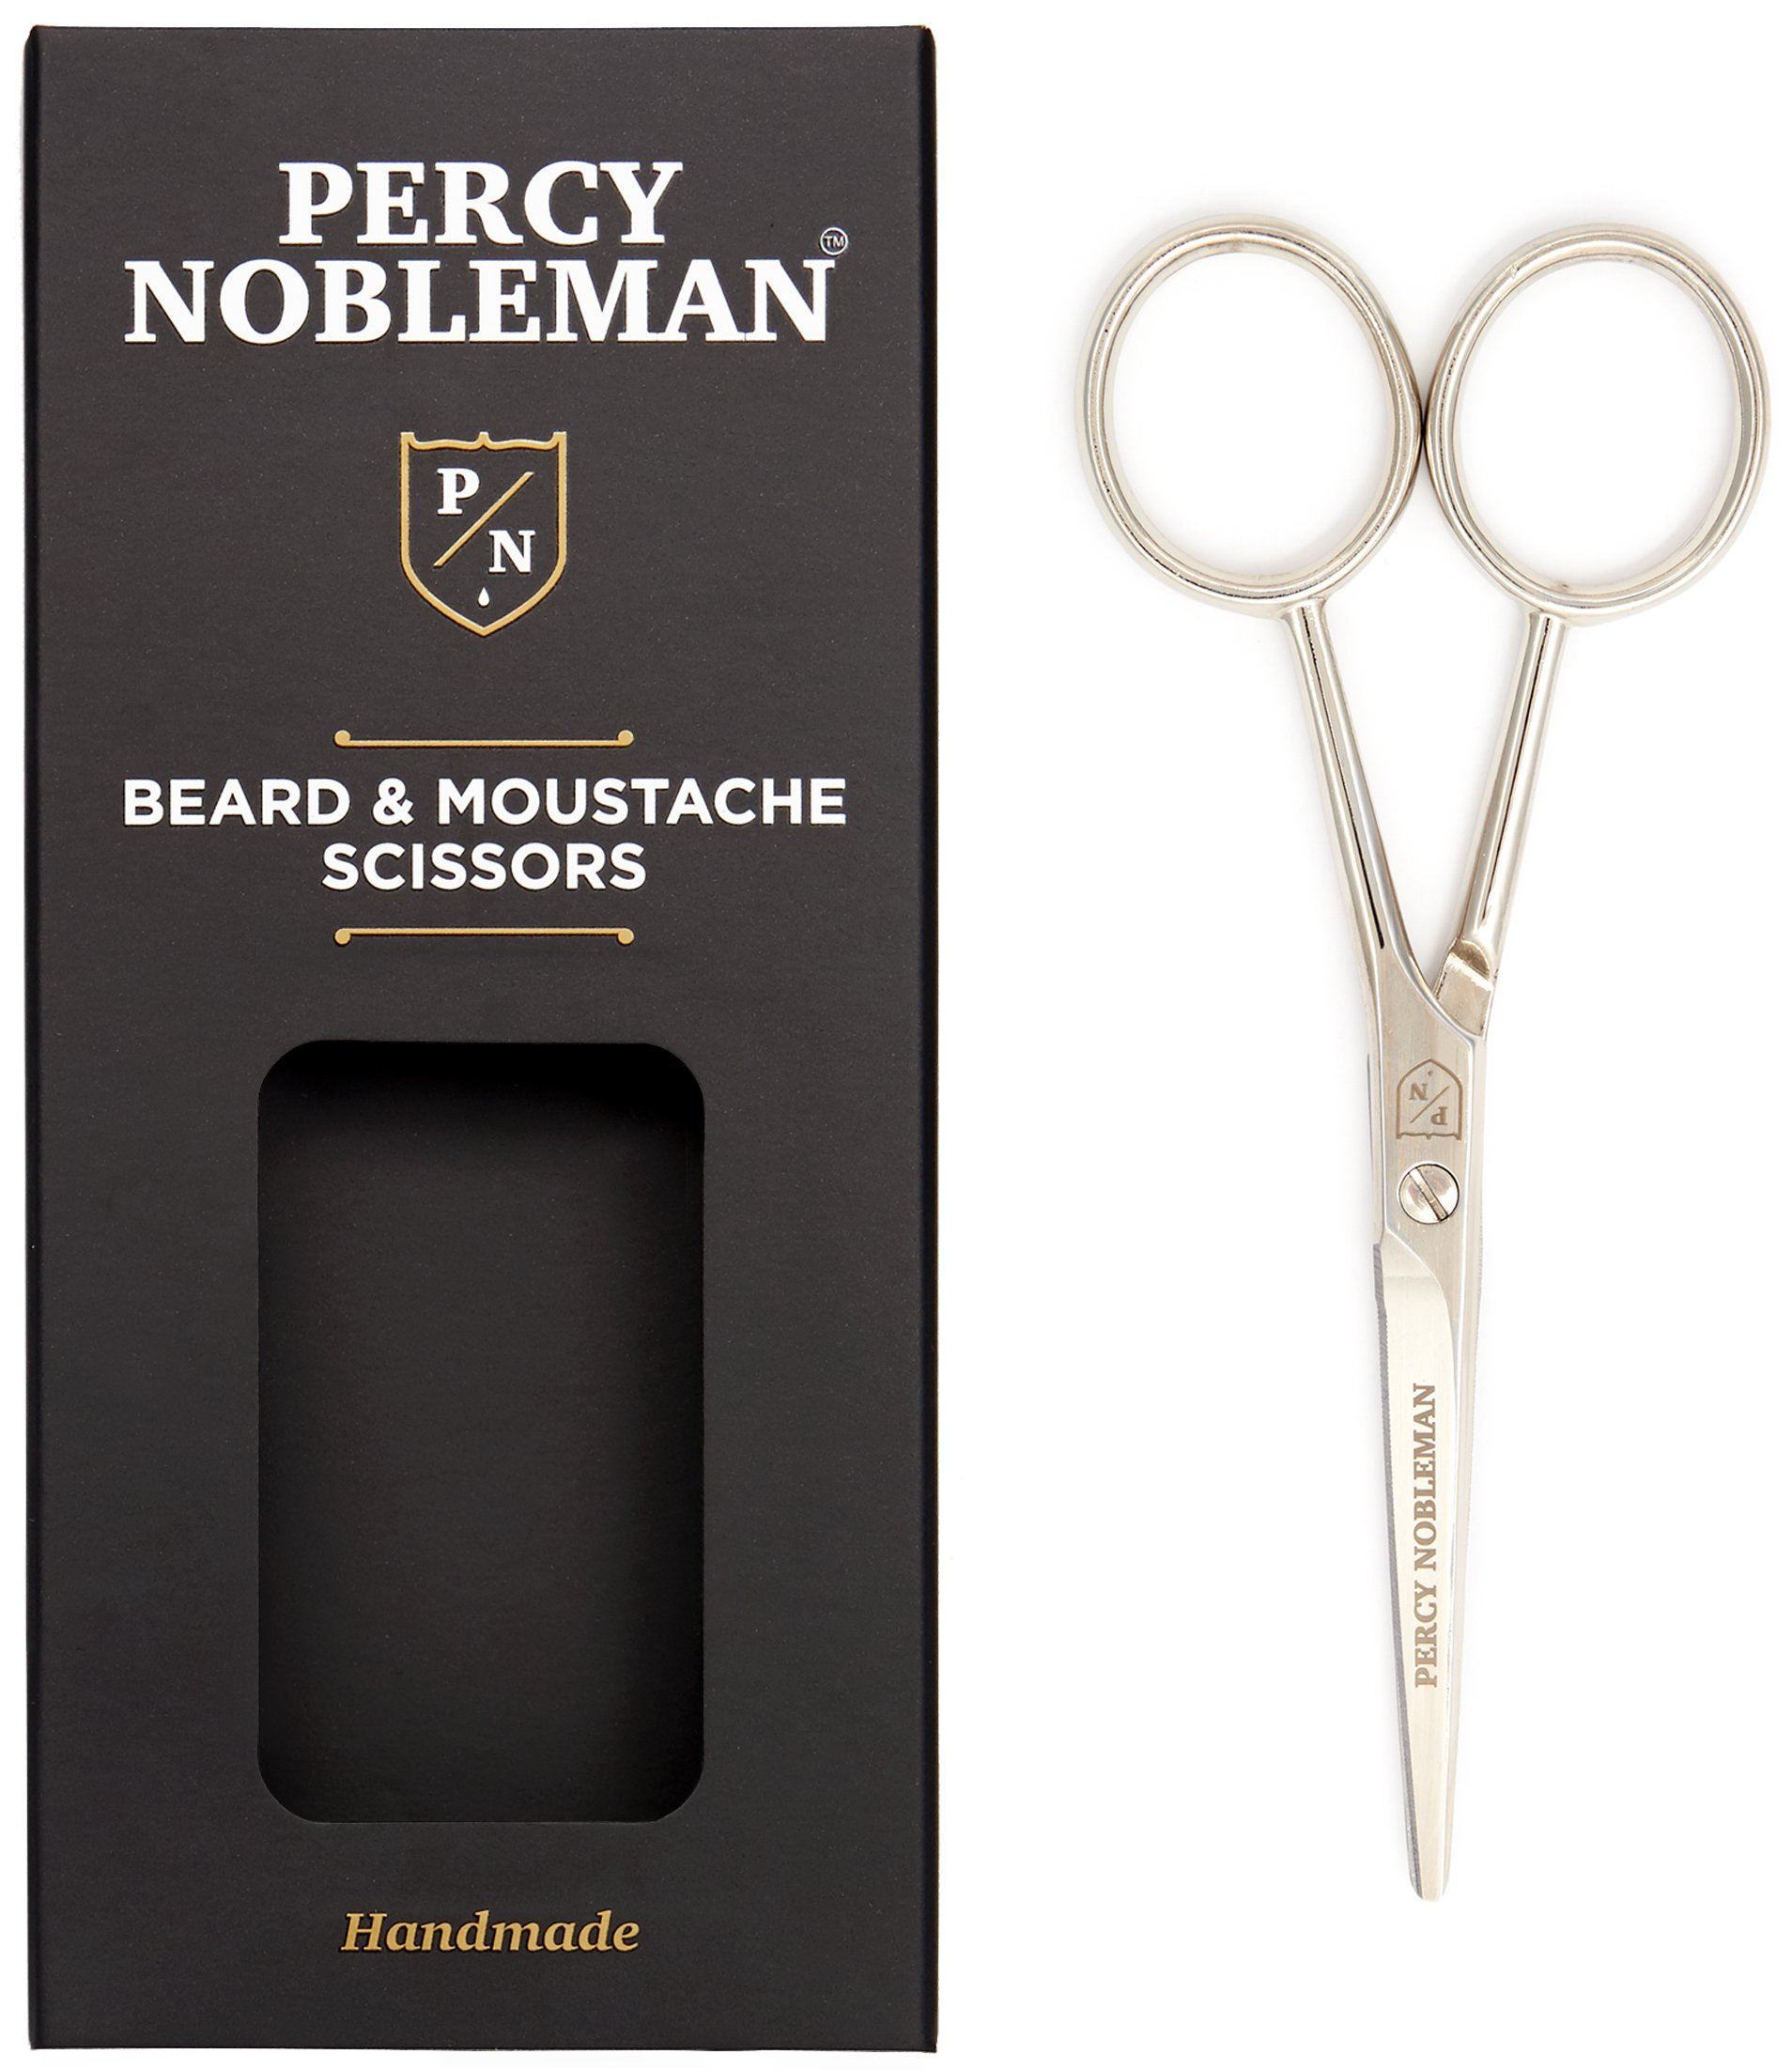 Beard and Mustache Scissors By Percy Nobleman